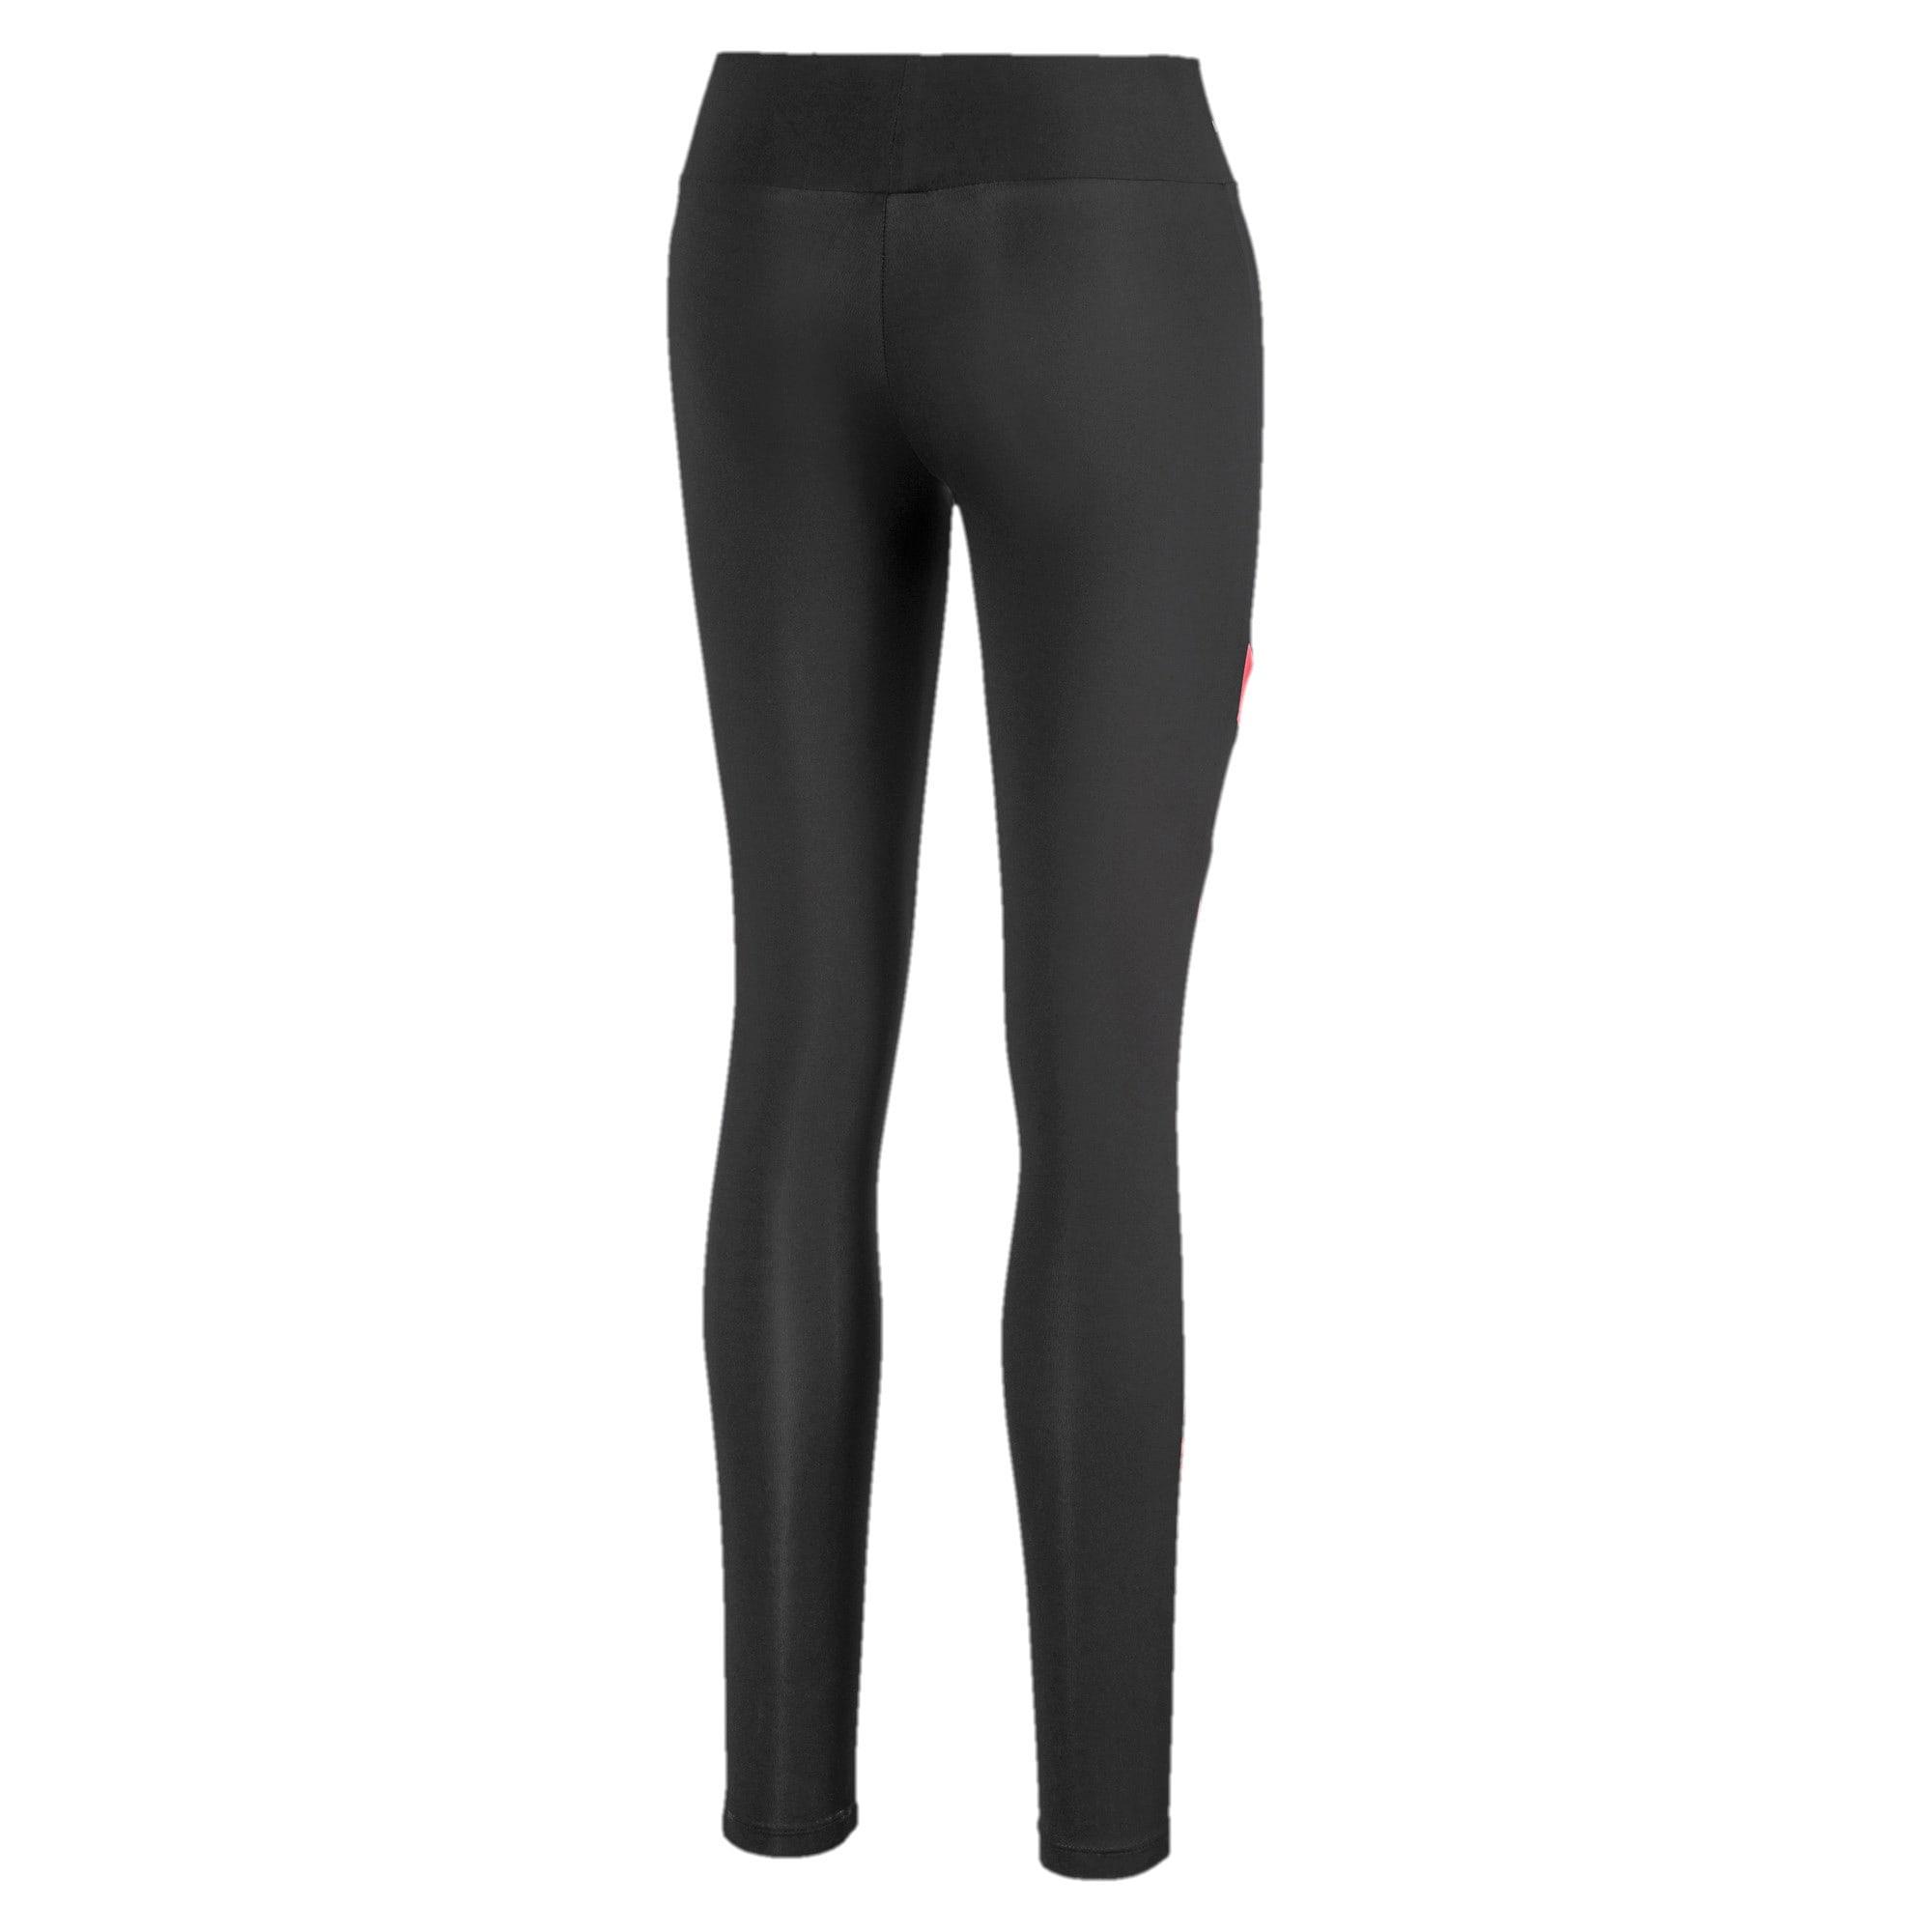 Thumbnail 2 of PUMA x MAYBELLINE Women's Leggings, Puma Black, medium